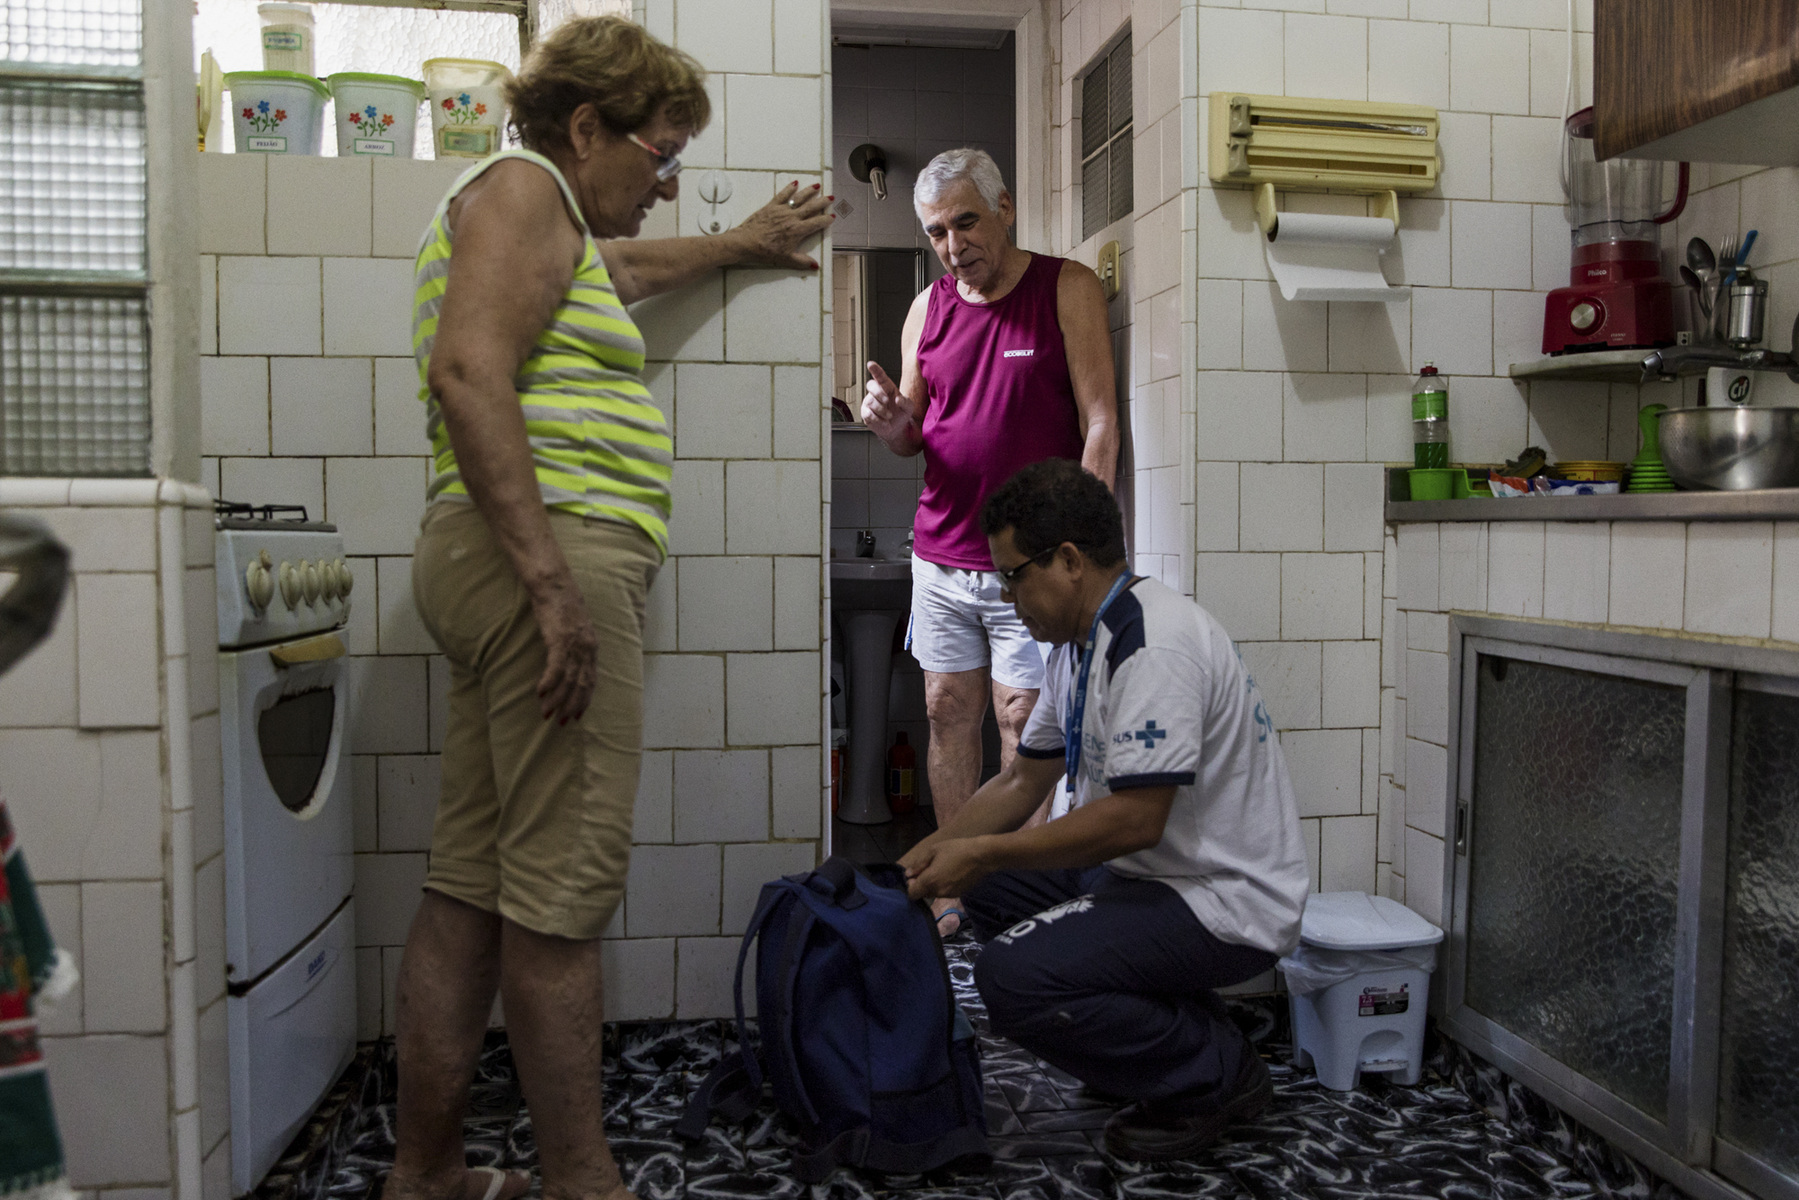 "Adrienne Surprenant - 22/01/2019, Rio de Janeiro, Brazil—Health vigilance agent, Clodoaldo Pesseira Lima, working for Rio de Janeiro's prefecture since 15 years, visits residents of the Grande Tijuca neighborhood to detect mosquito breeding spots. He puts larvicide in dangerous ponds of water. He visits the house of José, who says: ""I was a military and know they offer us a service, when they arrive uniformed. But many people don't open their doors by fear."" Both his wife and him once had dengue. This health vigilance service exists since 1903 in Brazil. Agents have to pass every six months in each house that accepts to receive them."